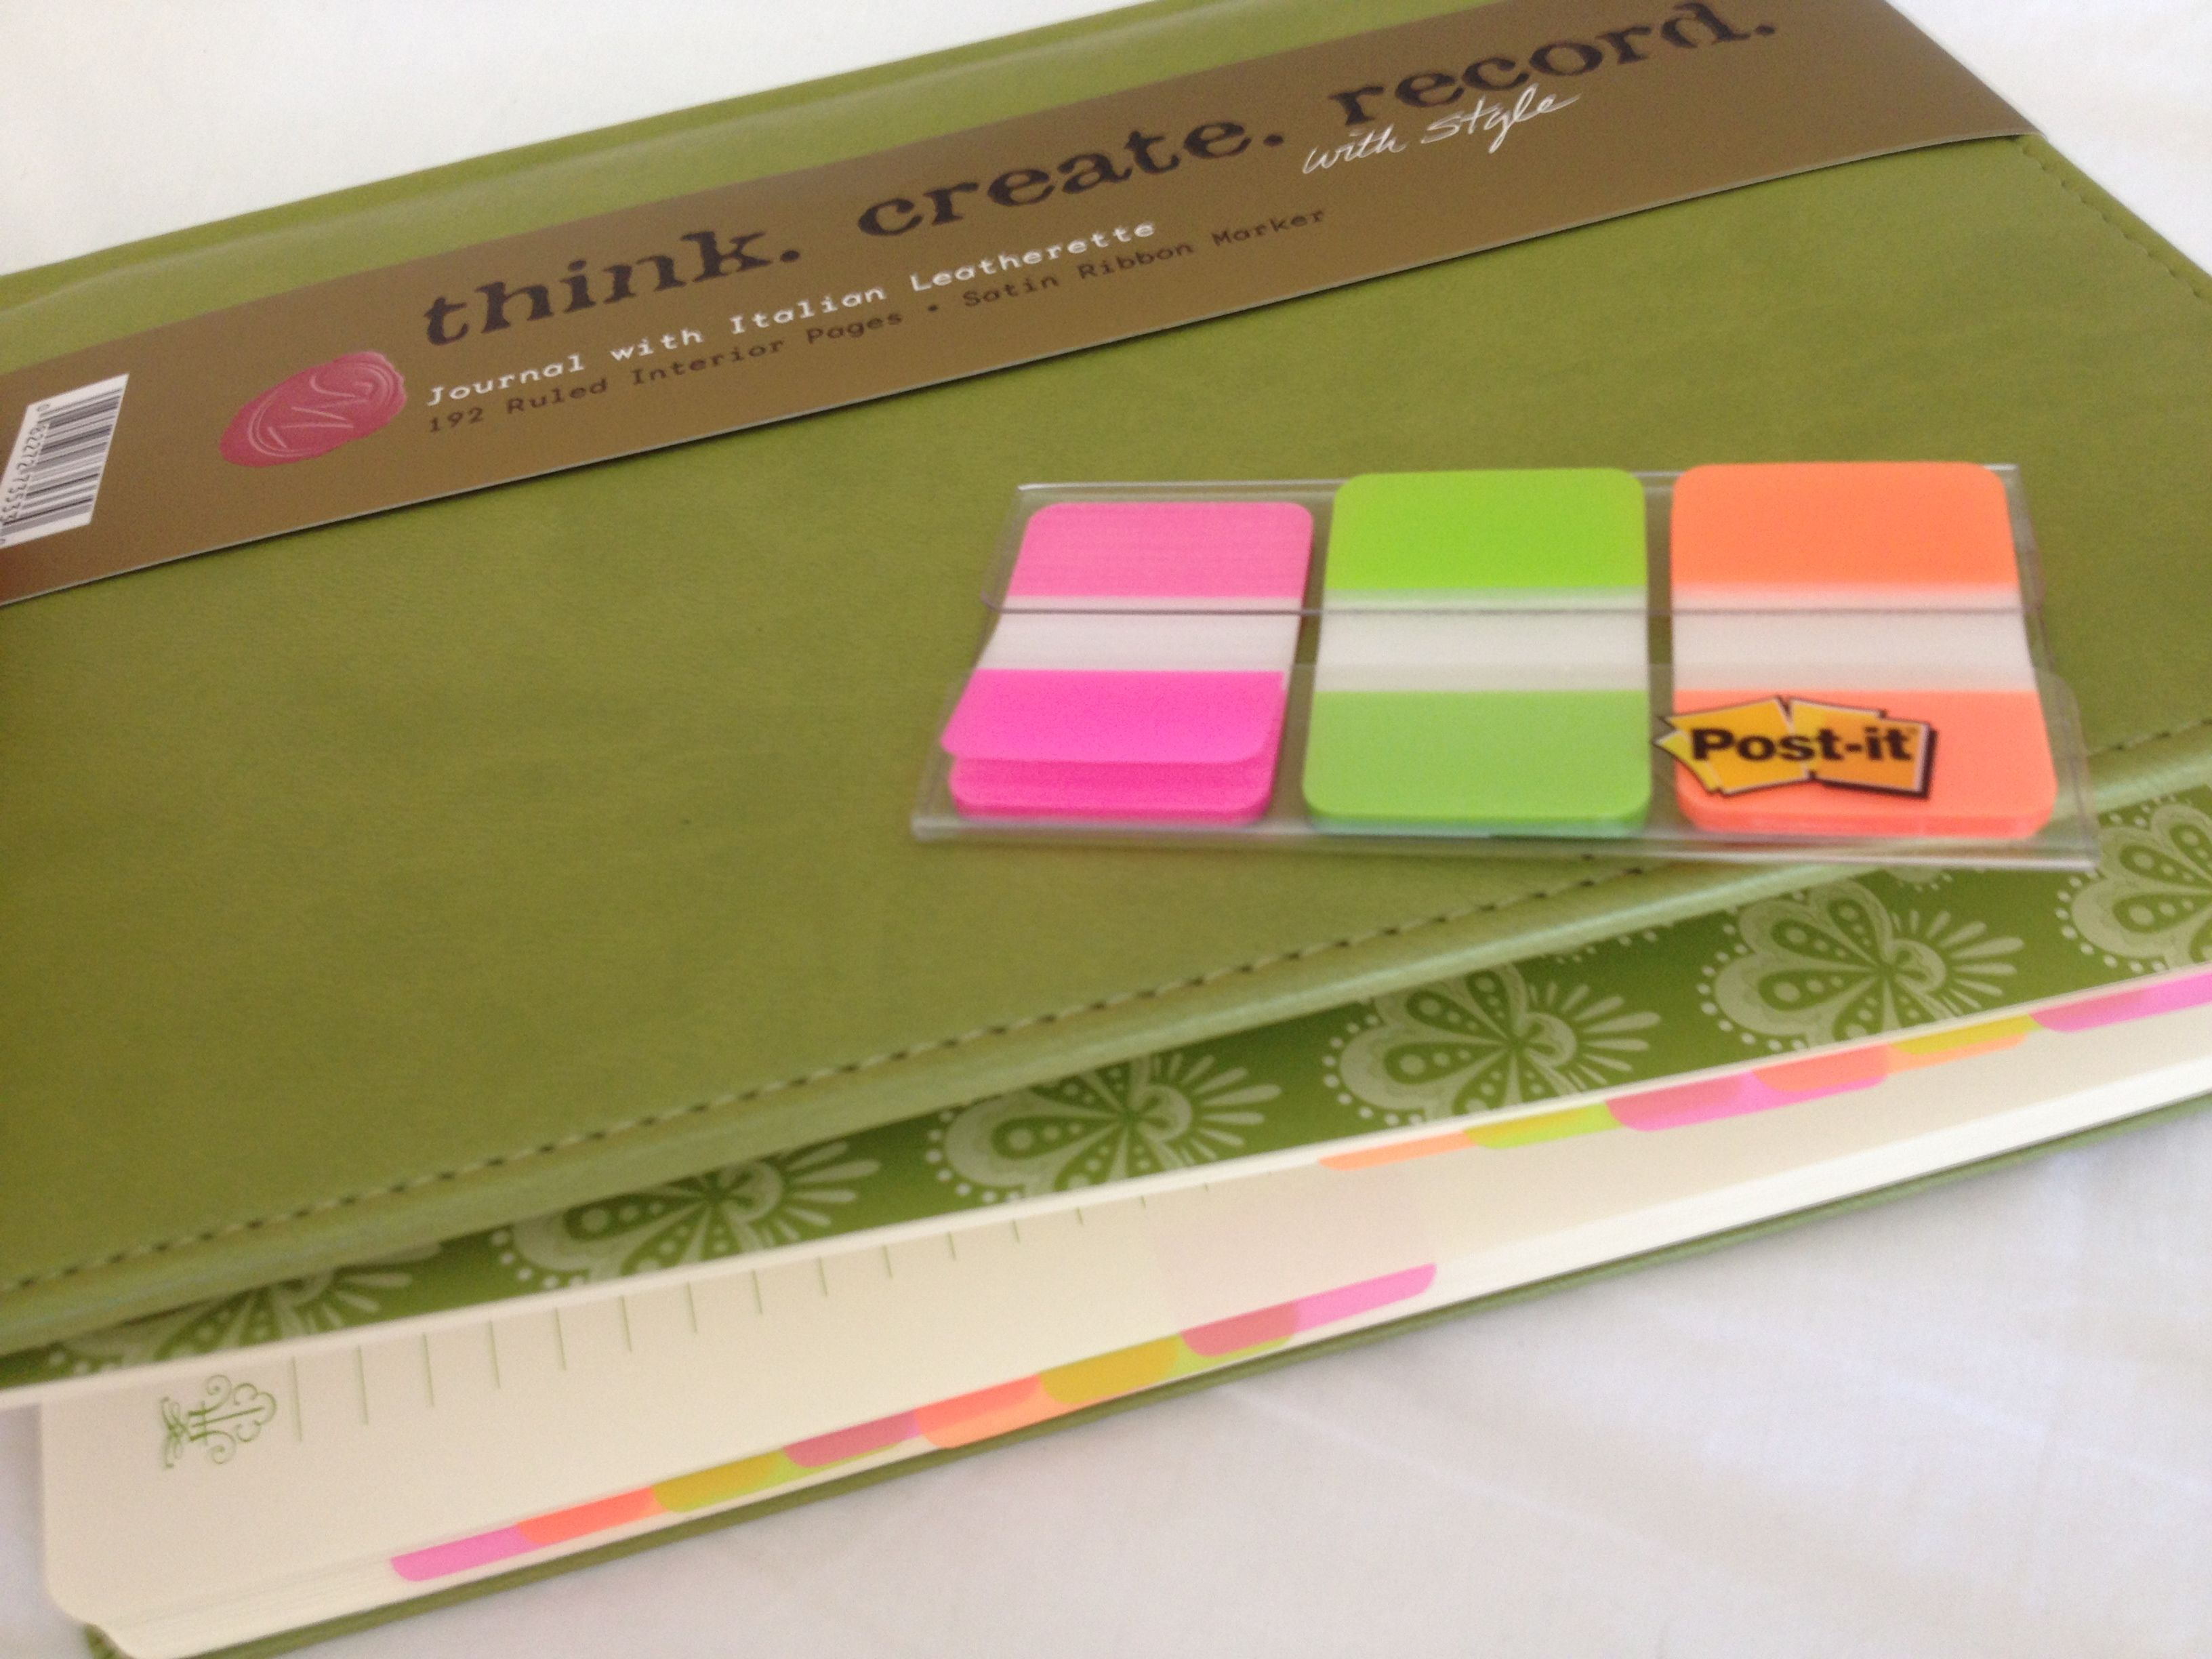 DIY phone book. Much cheaper ($7 journal + $7 Post It tabs vs. $22 for Staples phone book) and cuter! :)